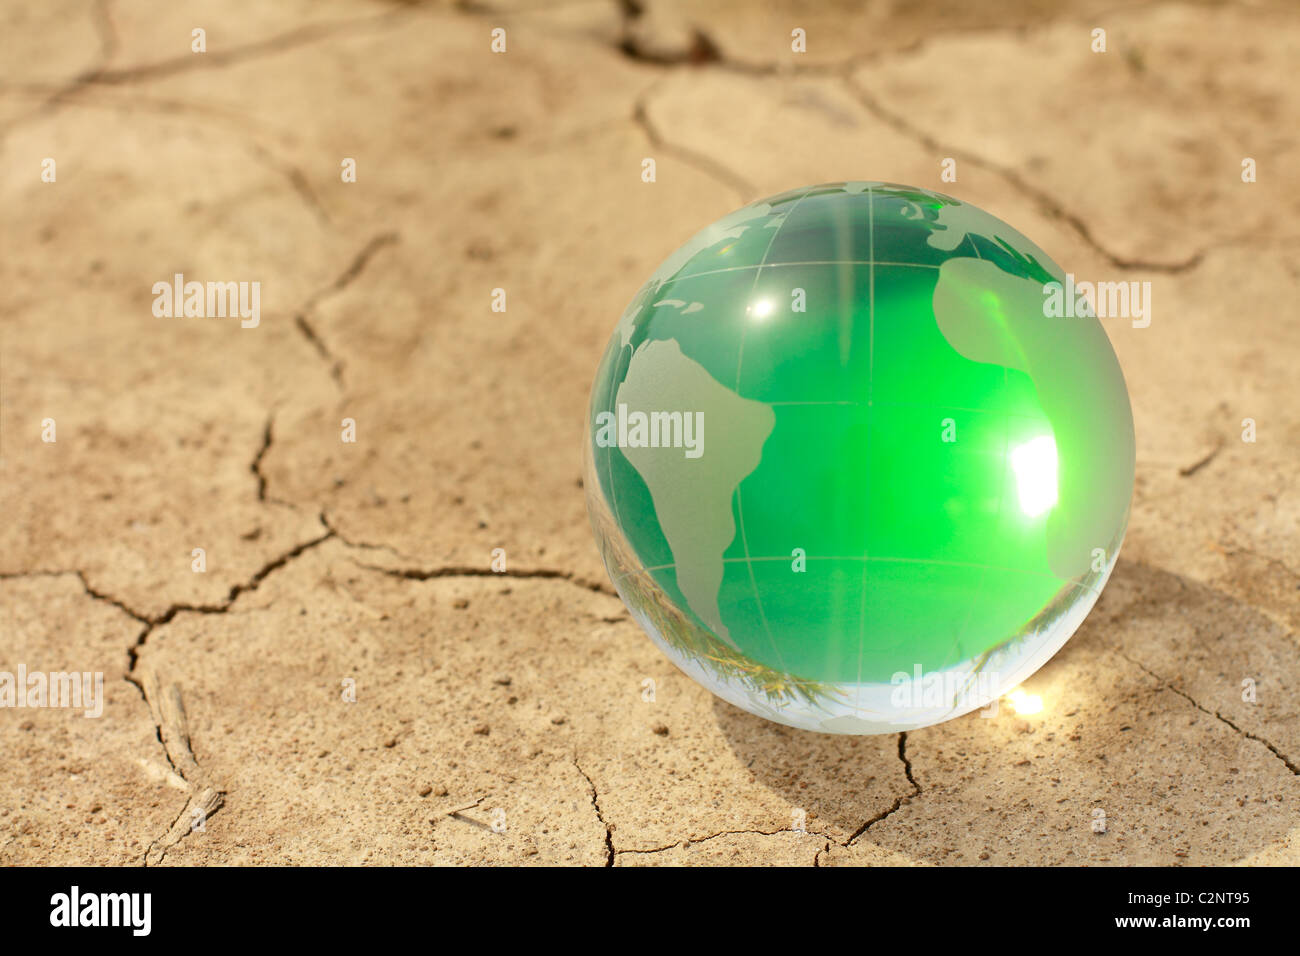 glass on the planet parched cracked earth - Stock Image